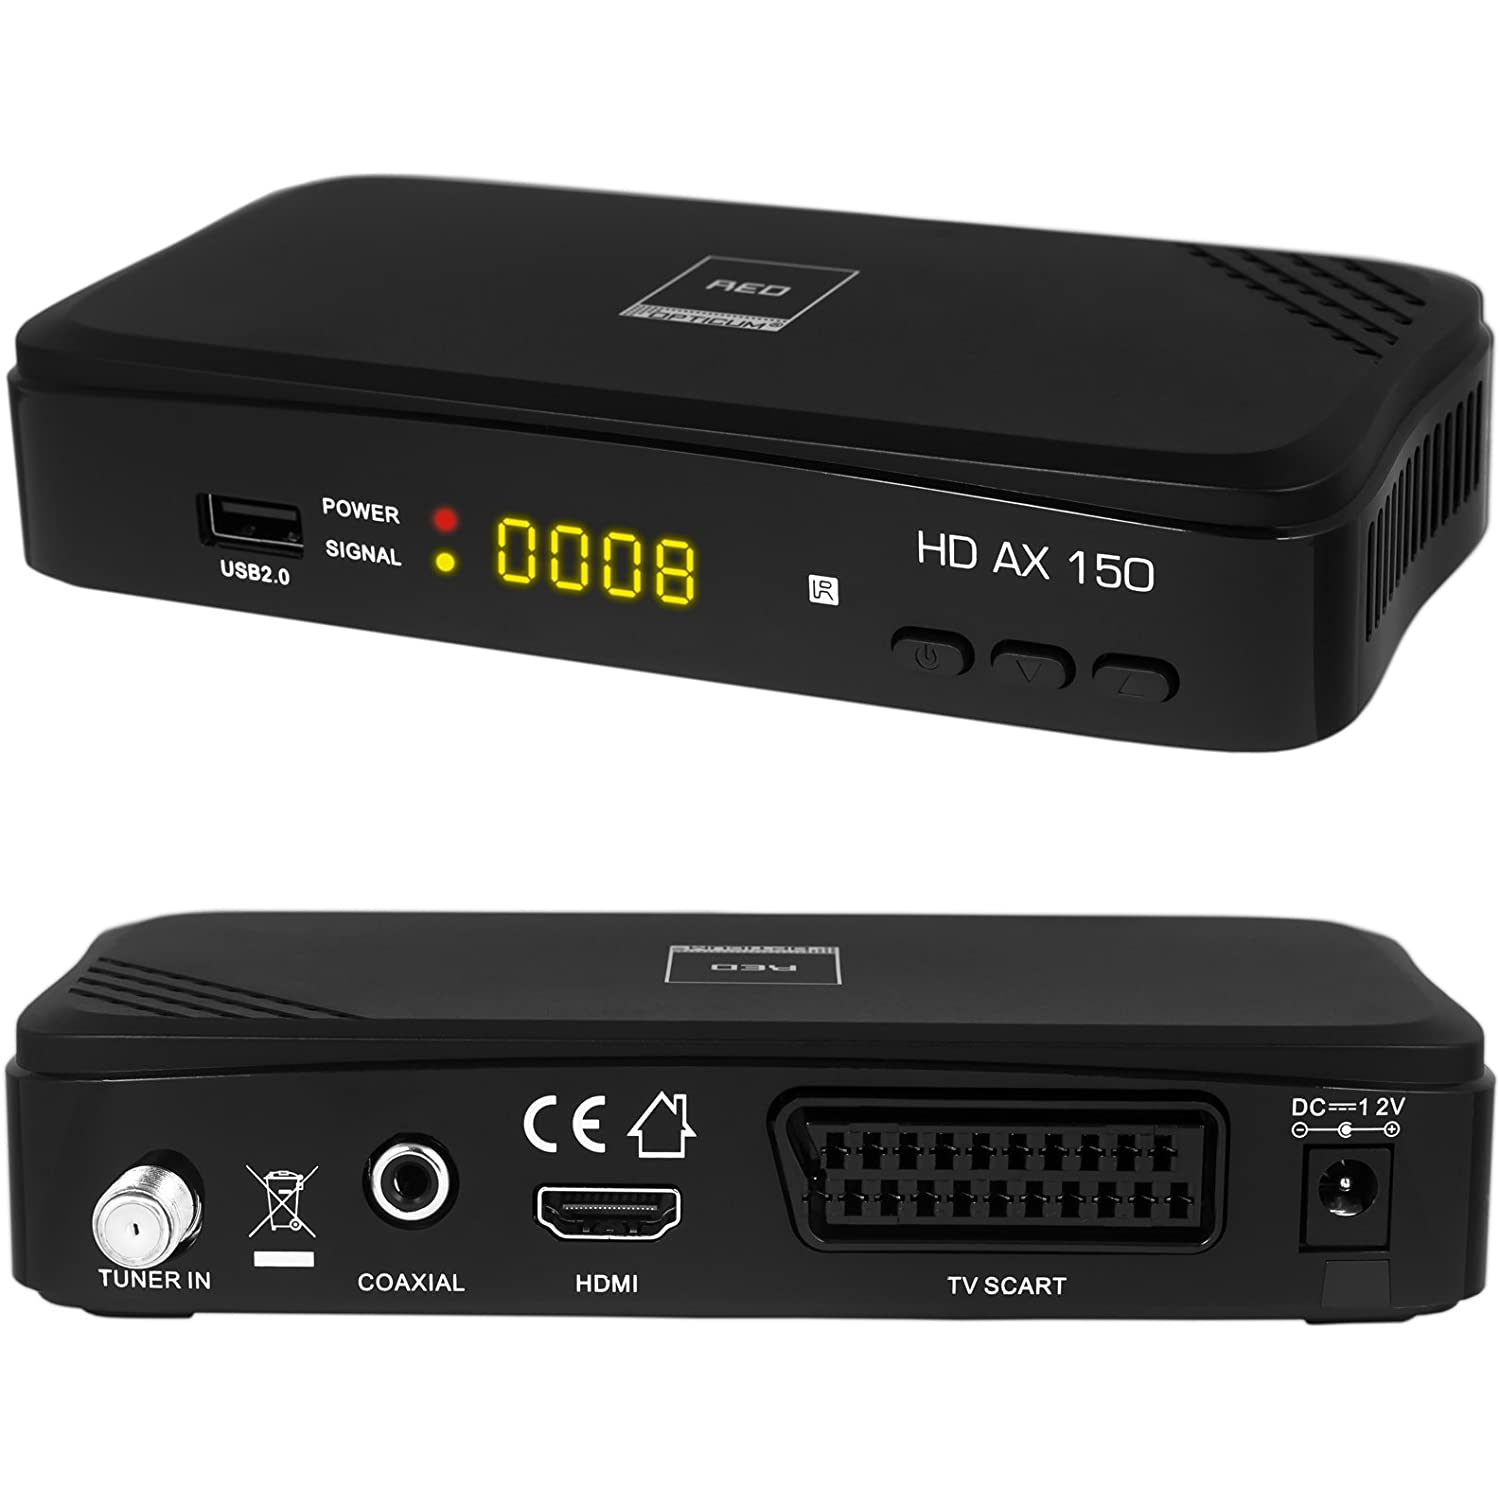 HB Digital Satelliten Receiver